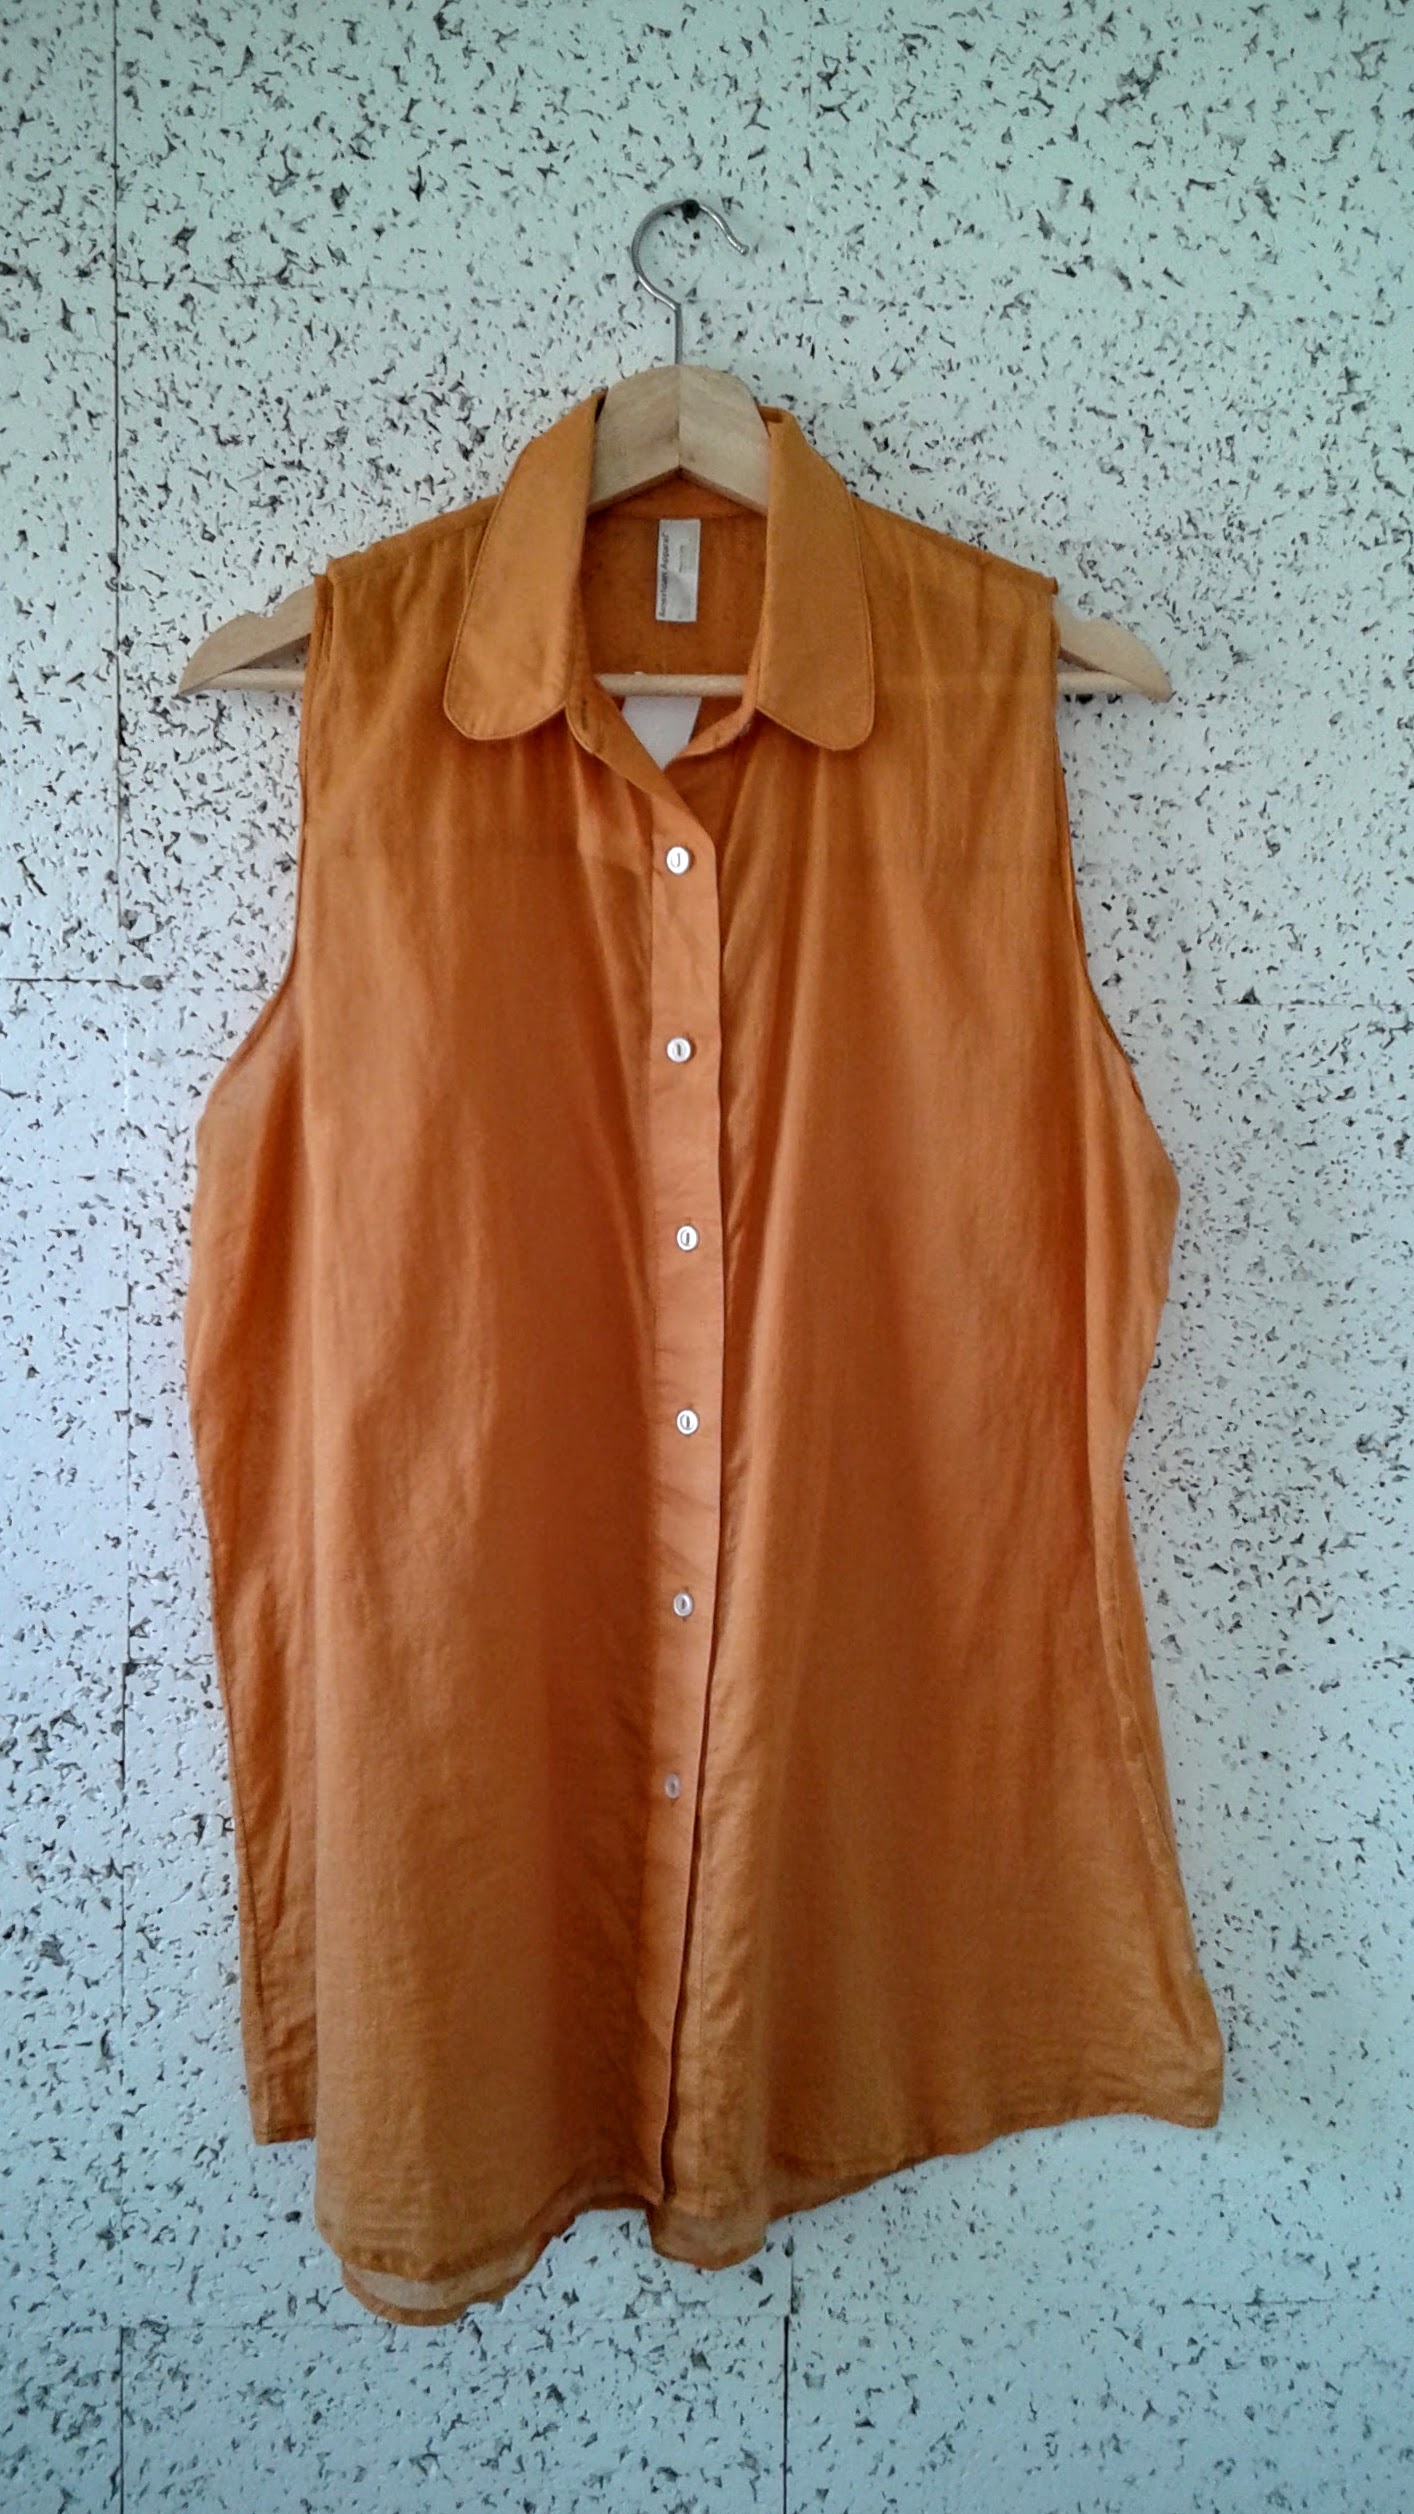 American Apparel  top; Size M/L, $20